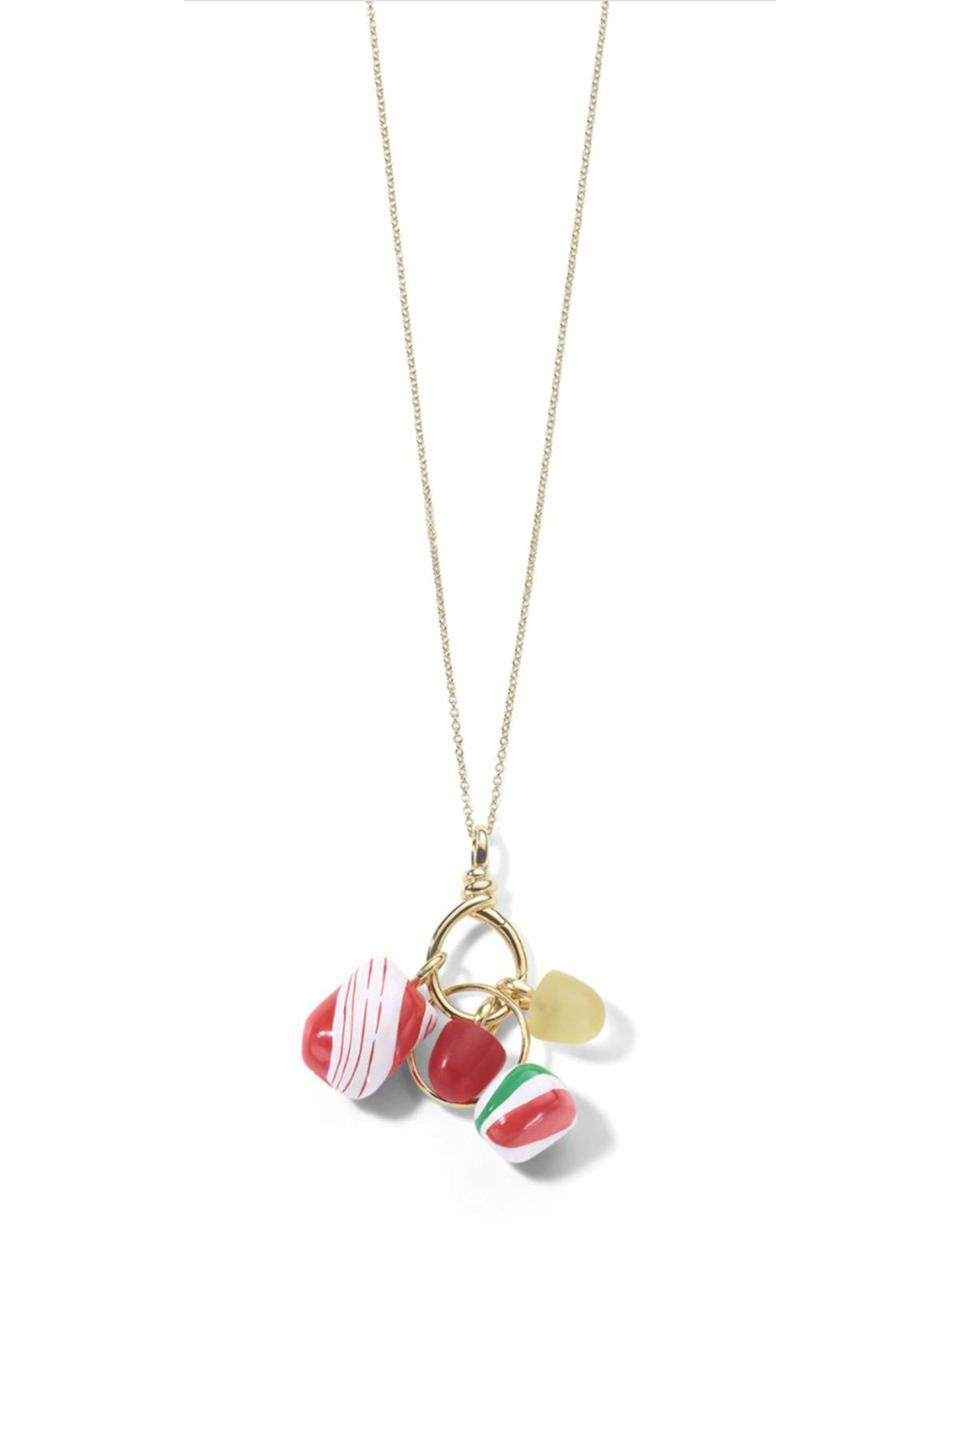 """<p><strong>Ippolita</strong></p><p>ippolita.com</p><p><strong>$6500.00</strong></p><p><a href=""""https://www.ippolita.com/will-cotton-charm-holder-necklace-in-18k-gold-gsn1636-cotton/"""" rel=""""nofollow noopener"""" target=""""_blank"""" data-ylk=""""slk:Shop Now"""" class=""""link rapid-noclick-resp"""">Shop Now</a></p><p>As part of Italian brand Ippolita's third collaboration with the Brooklyn Museum, the painter Will Cotton, who is famous for his works depicting confectionery-laden landscapes, designed this charm necklace featuring glass and ceramic bonbons.</p>"""